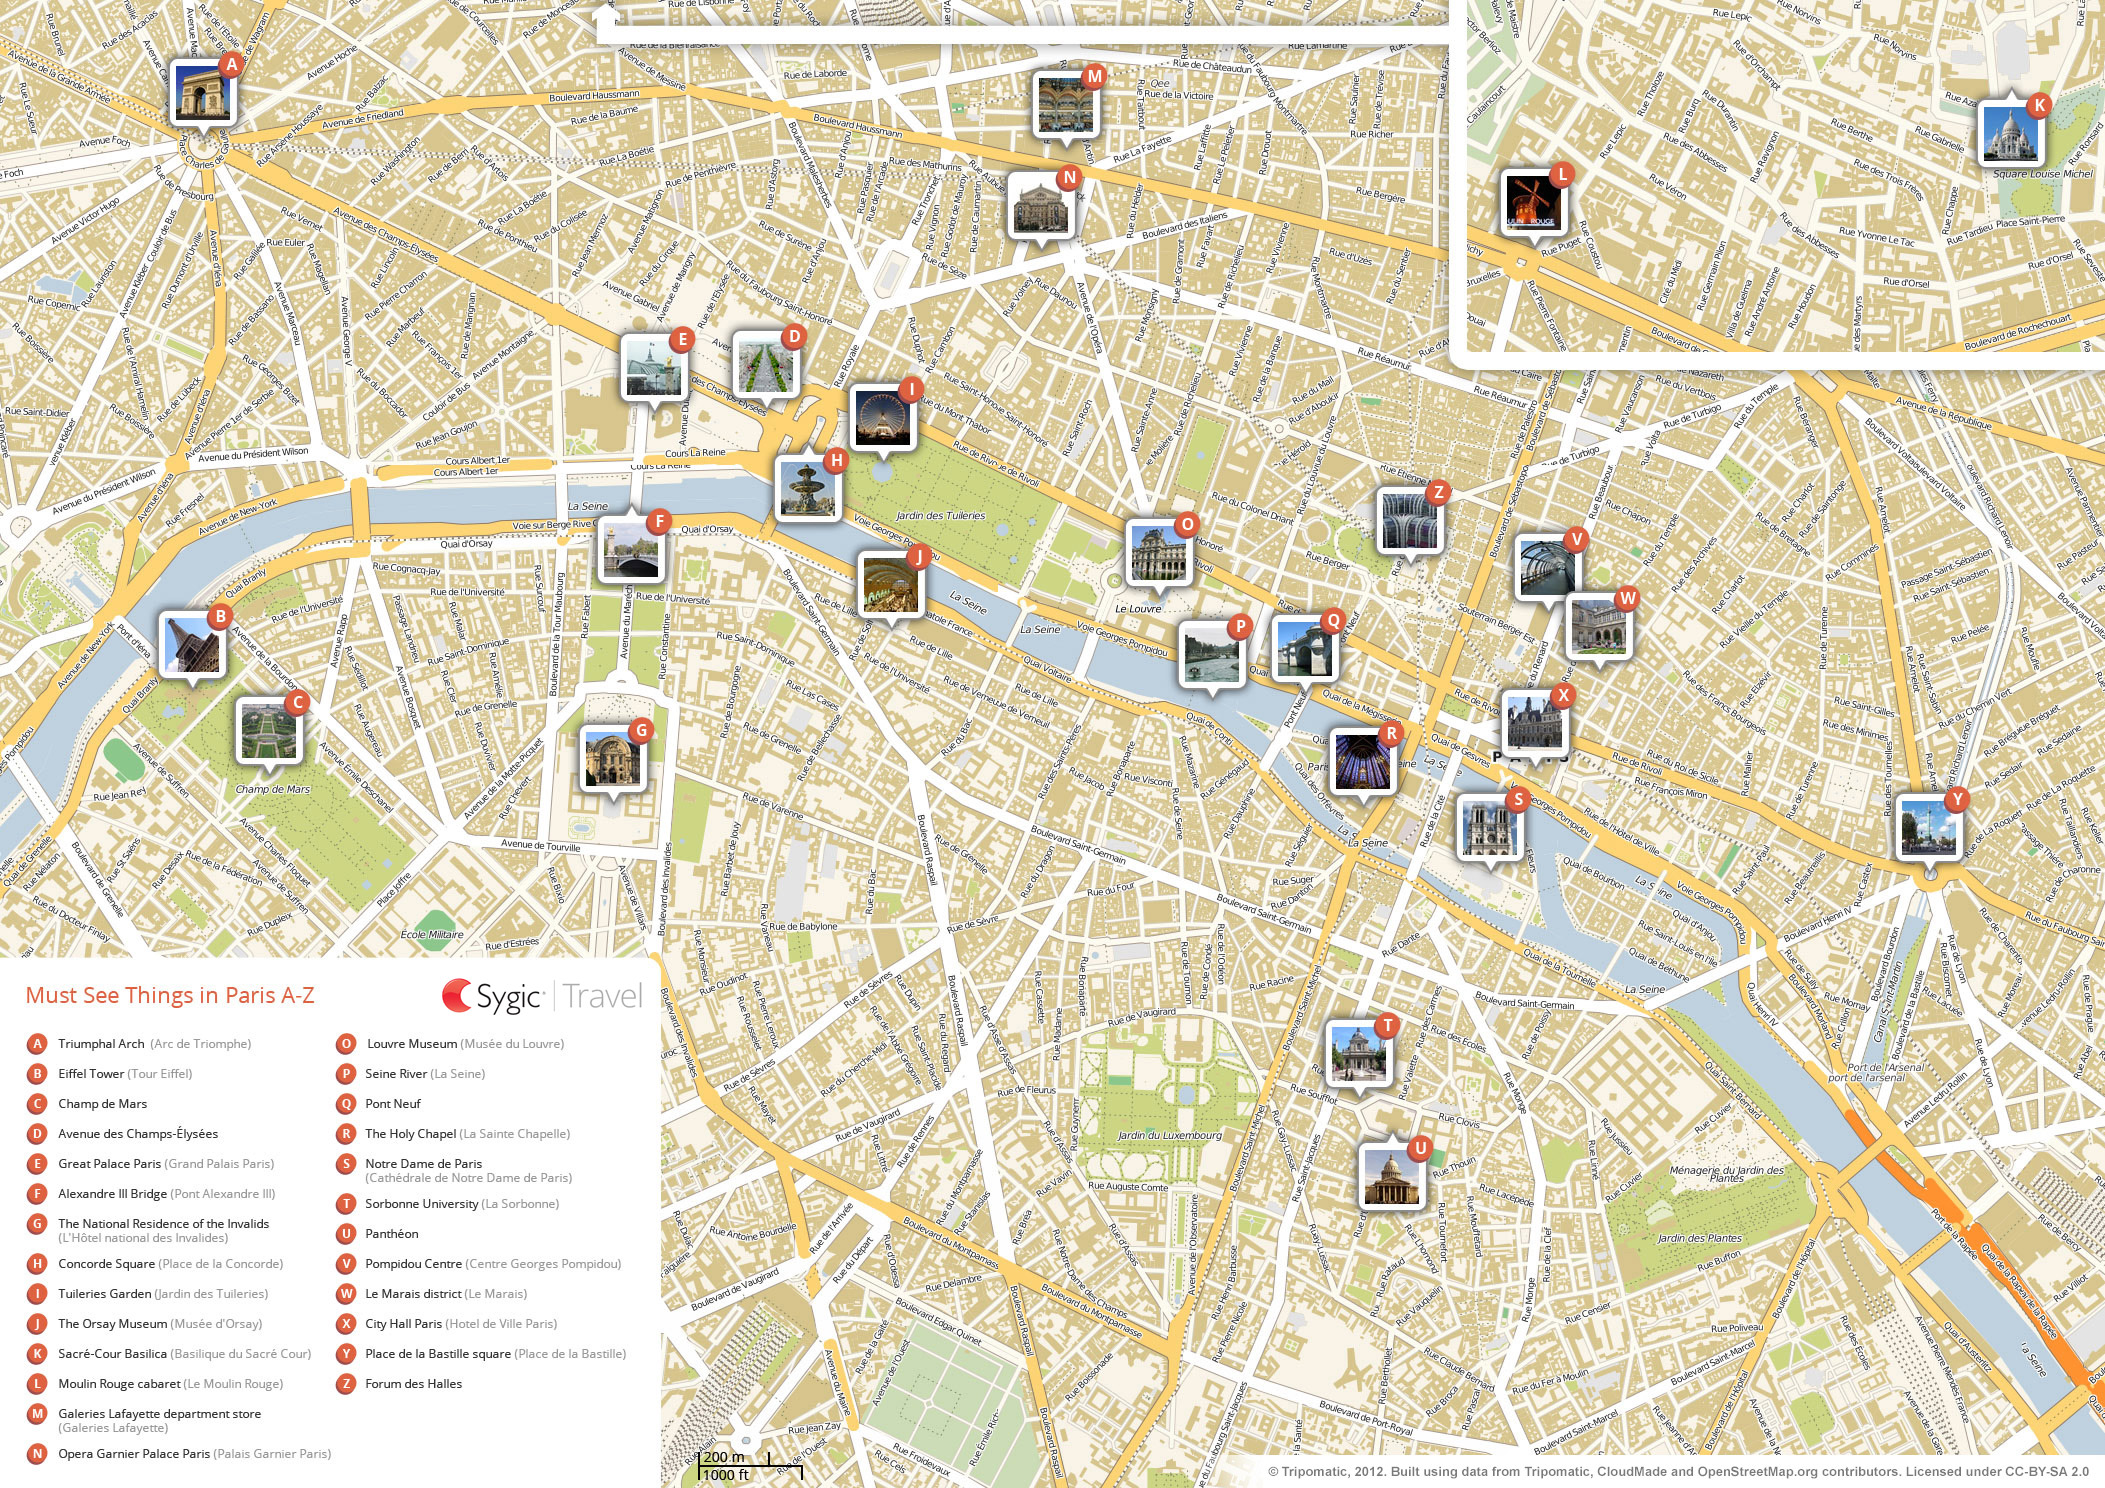 Paris Printable Tourist Map – Map Of London For Tourists